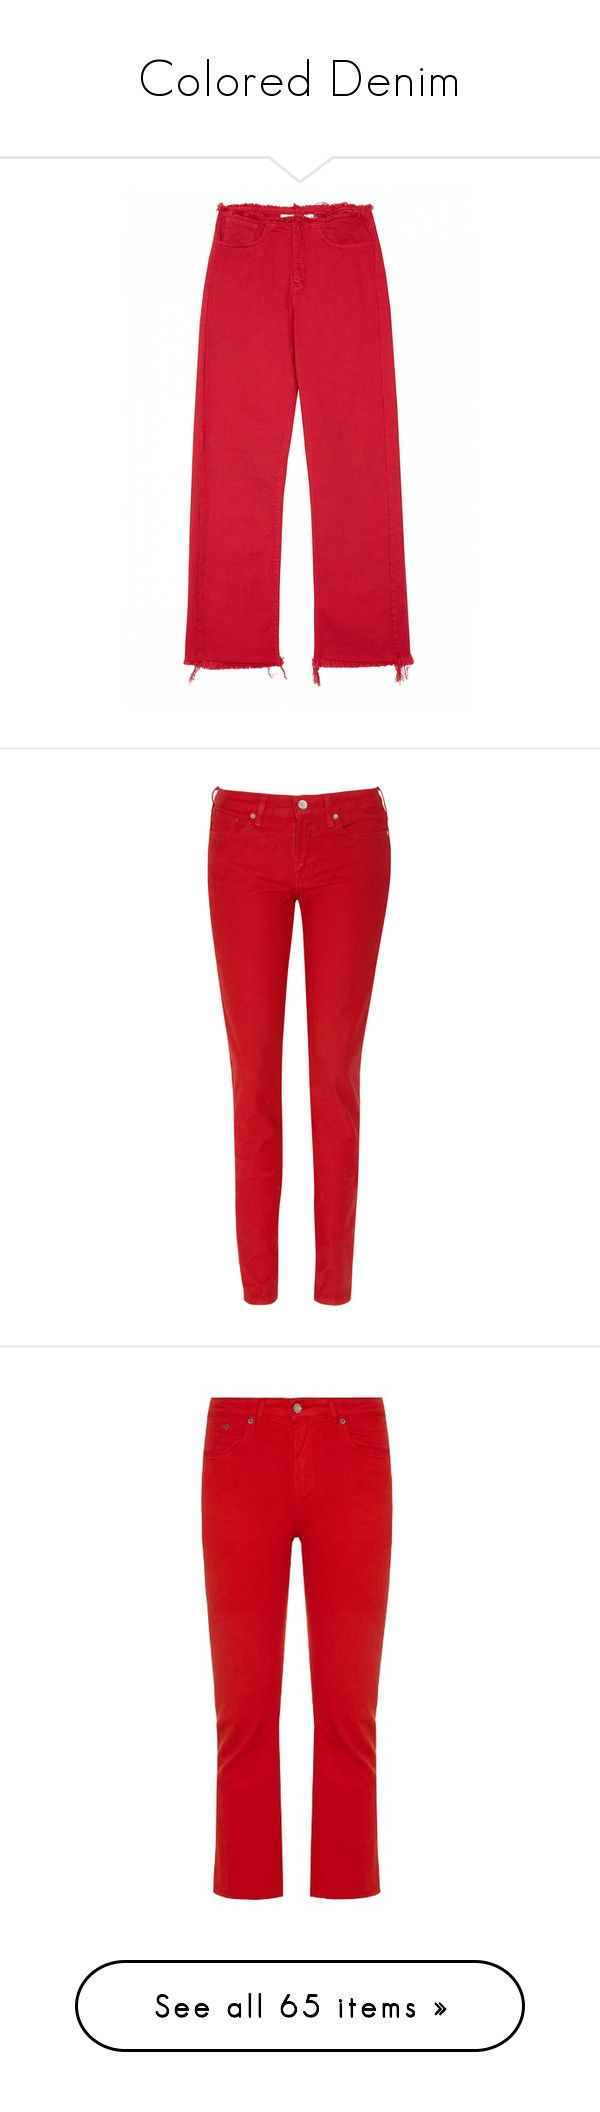 """Colored Denim"" by lence-59 ❤ liked on Polyvore featuring jeans, wide-leg jeans, red denim jeans, denim jeans, red jeans, pants, leather jeans, skinny leg jeans, skinny jeans and red leather skinny jeans"